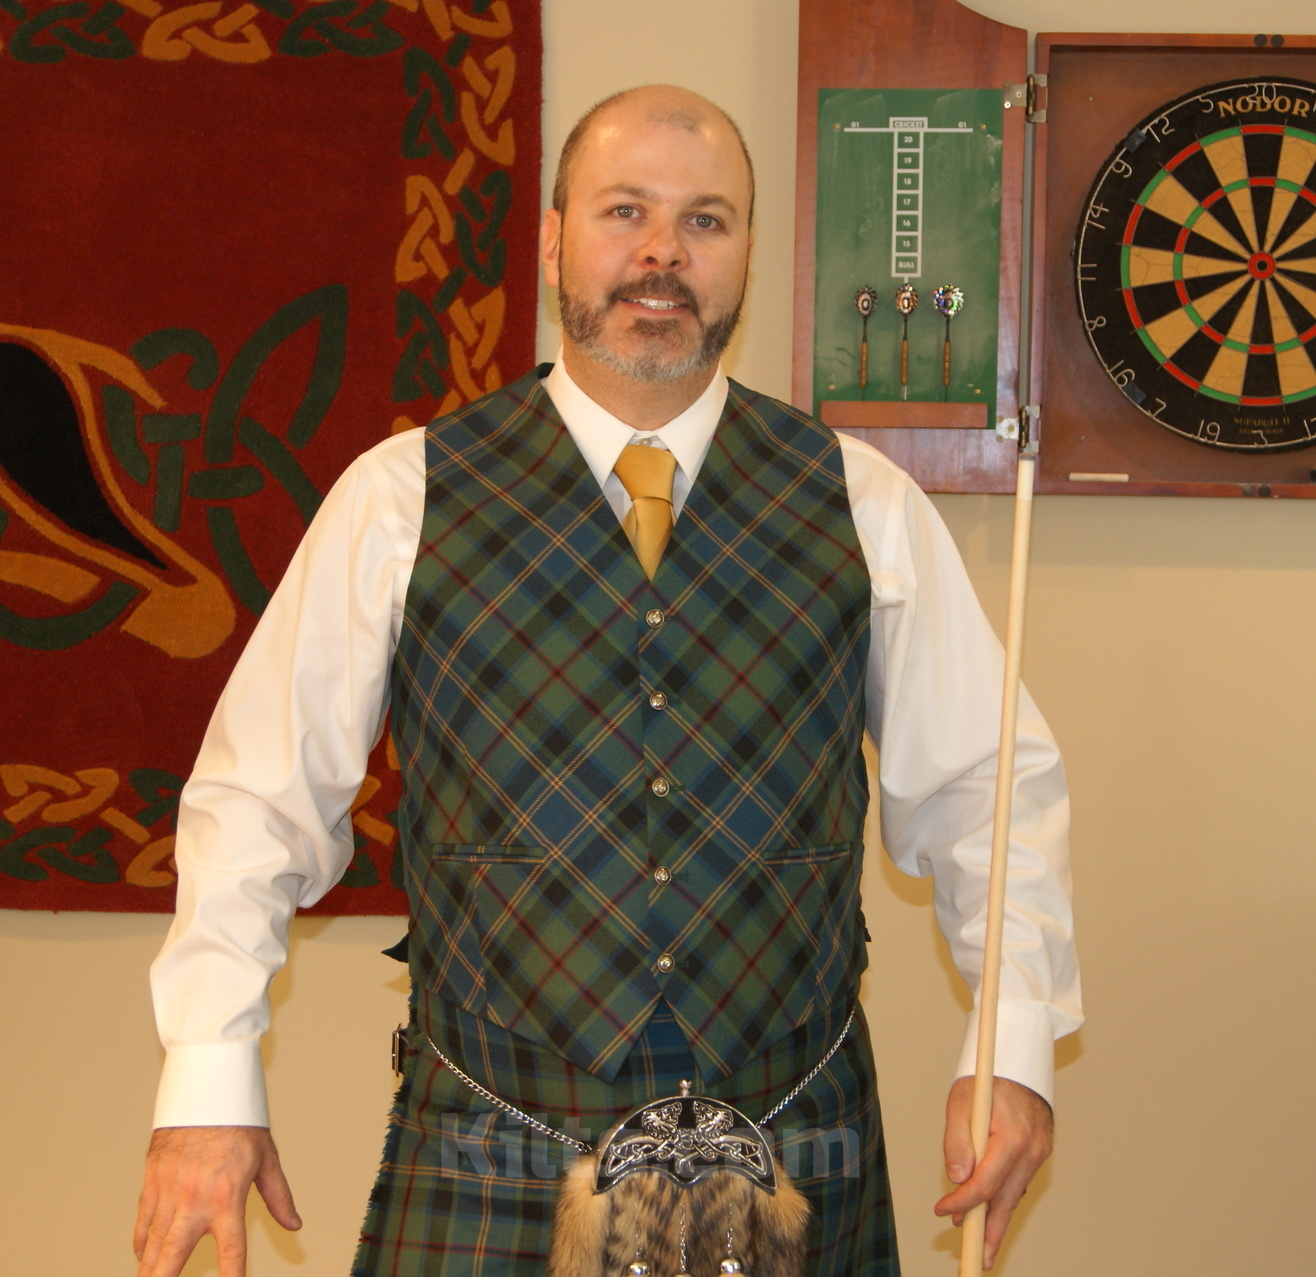 Check out our Tartan Vest for sale. The perfect tartan waistcoat for your kilt.